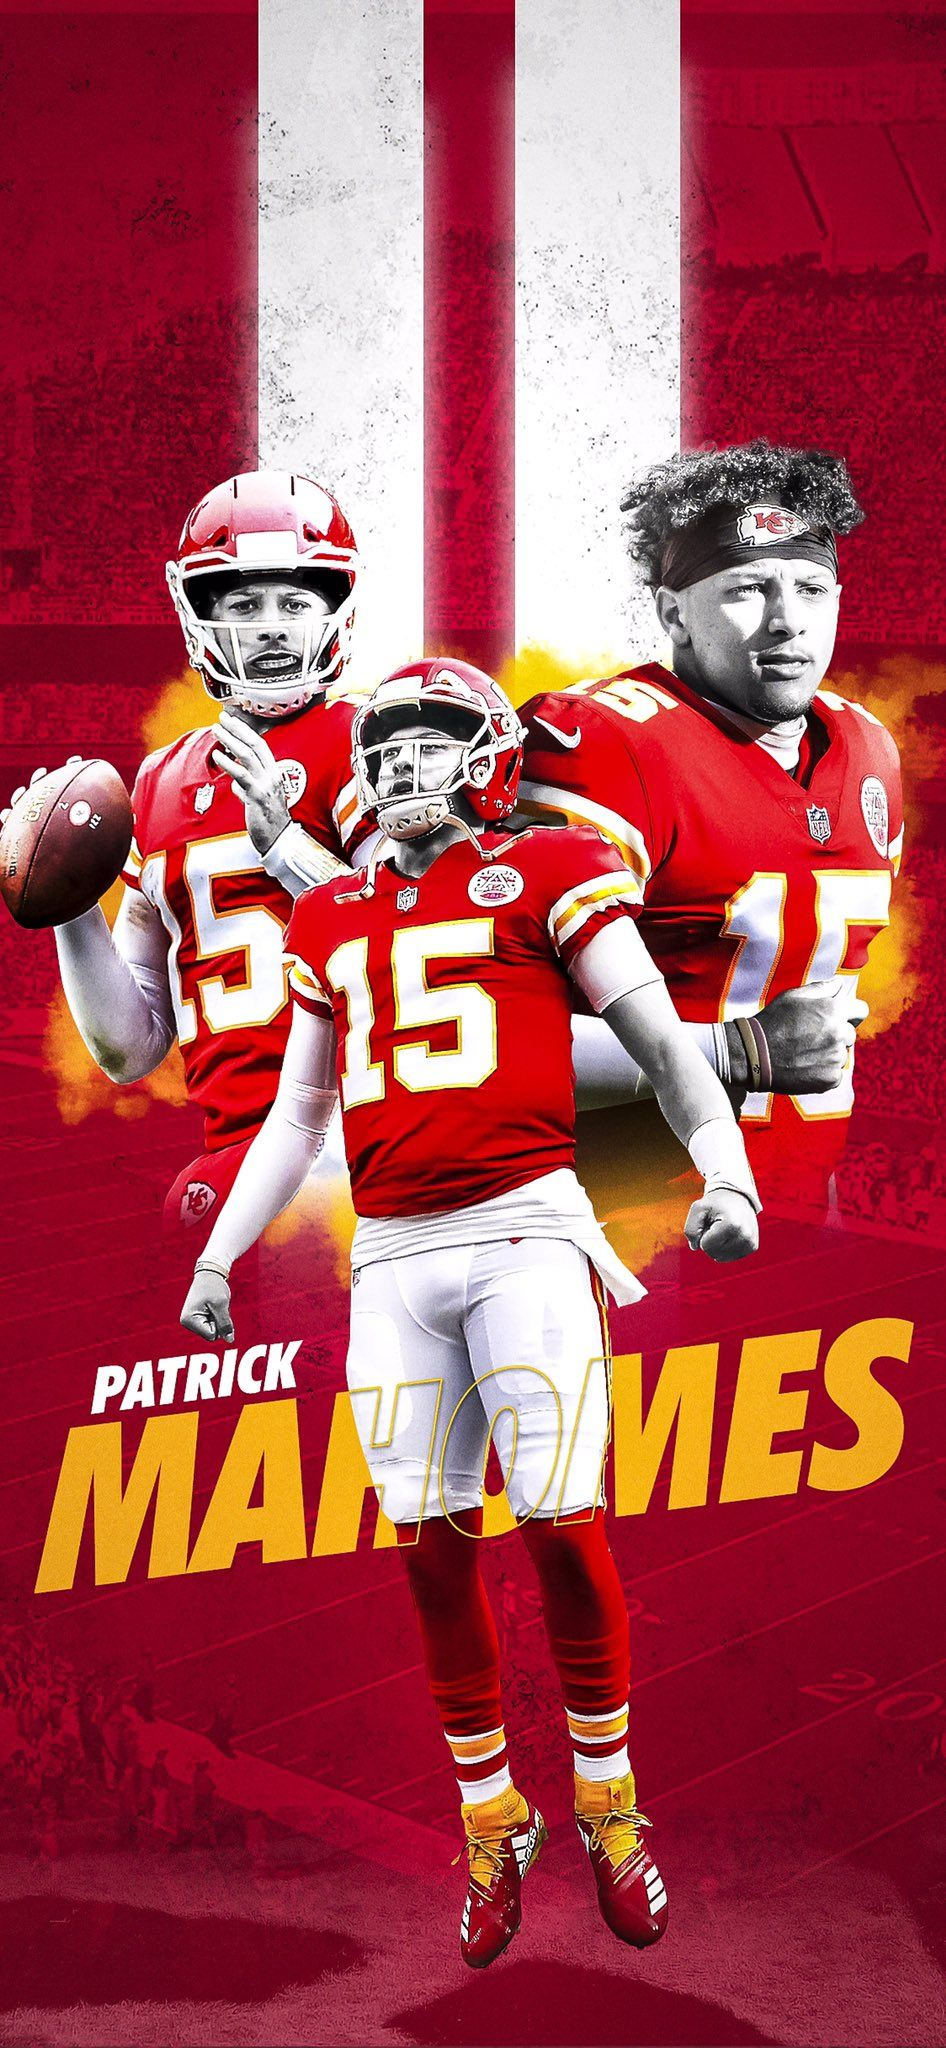 Mahomes Mobile Wallpaper In 2020 Chiefs Football Kansas City Chiefs Football Kc Chiefs Football